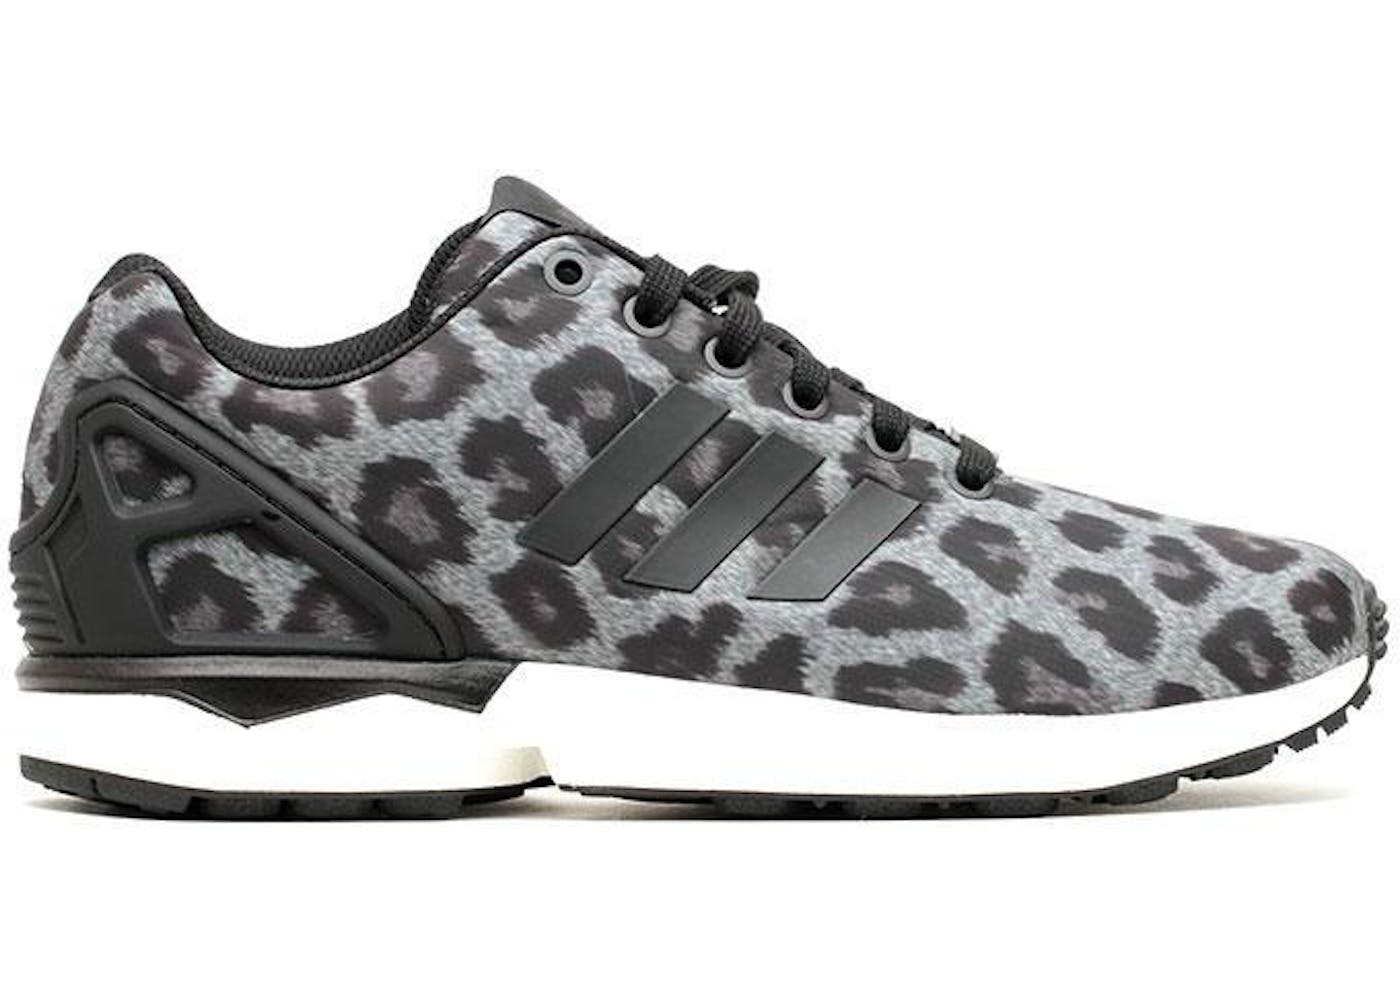 adidas zx flux pattern pack snow leopard. Black Bedroom Furniture Sets. Home Design Ideas